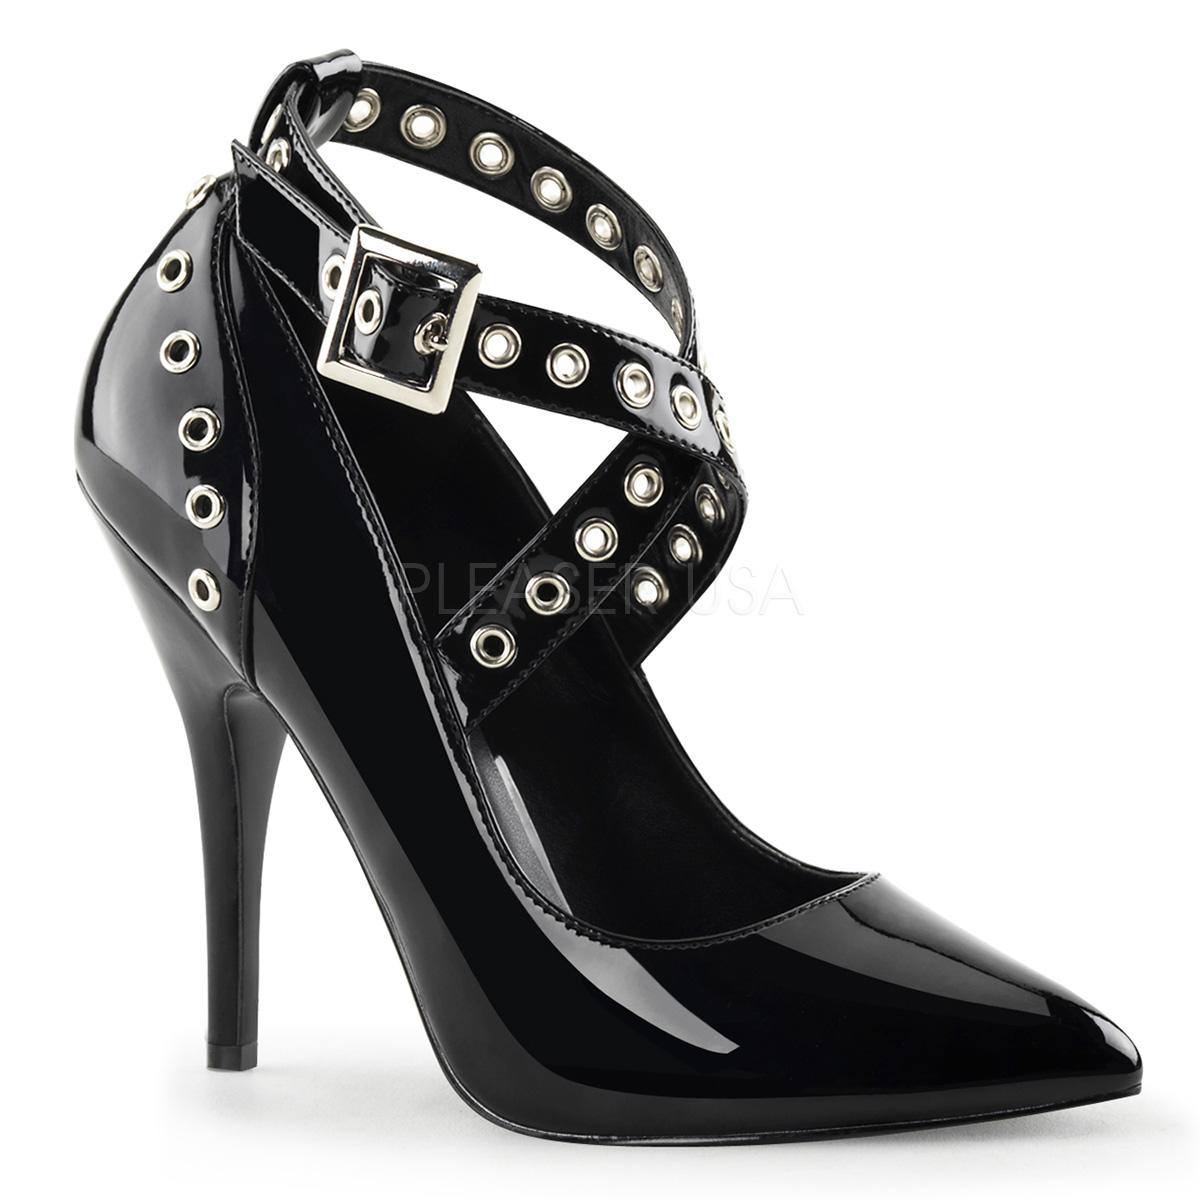 Black Patent Shoe with criss cross straps